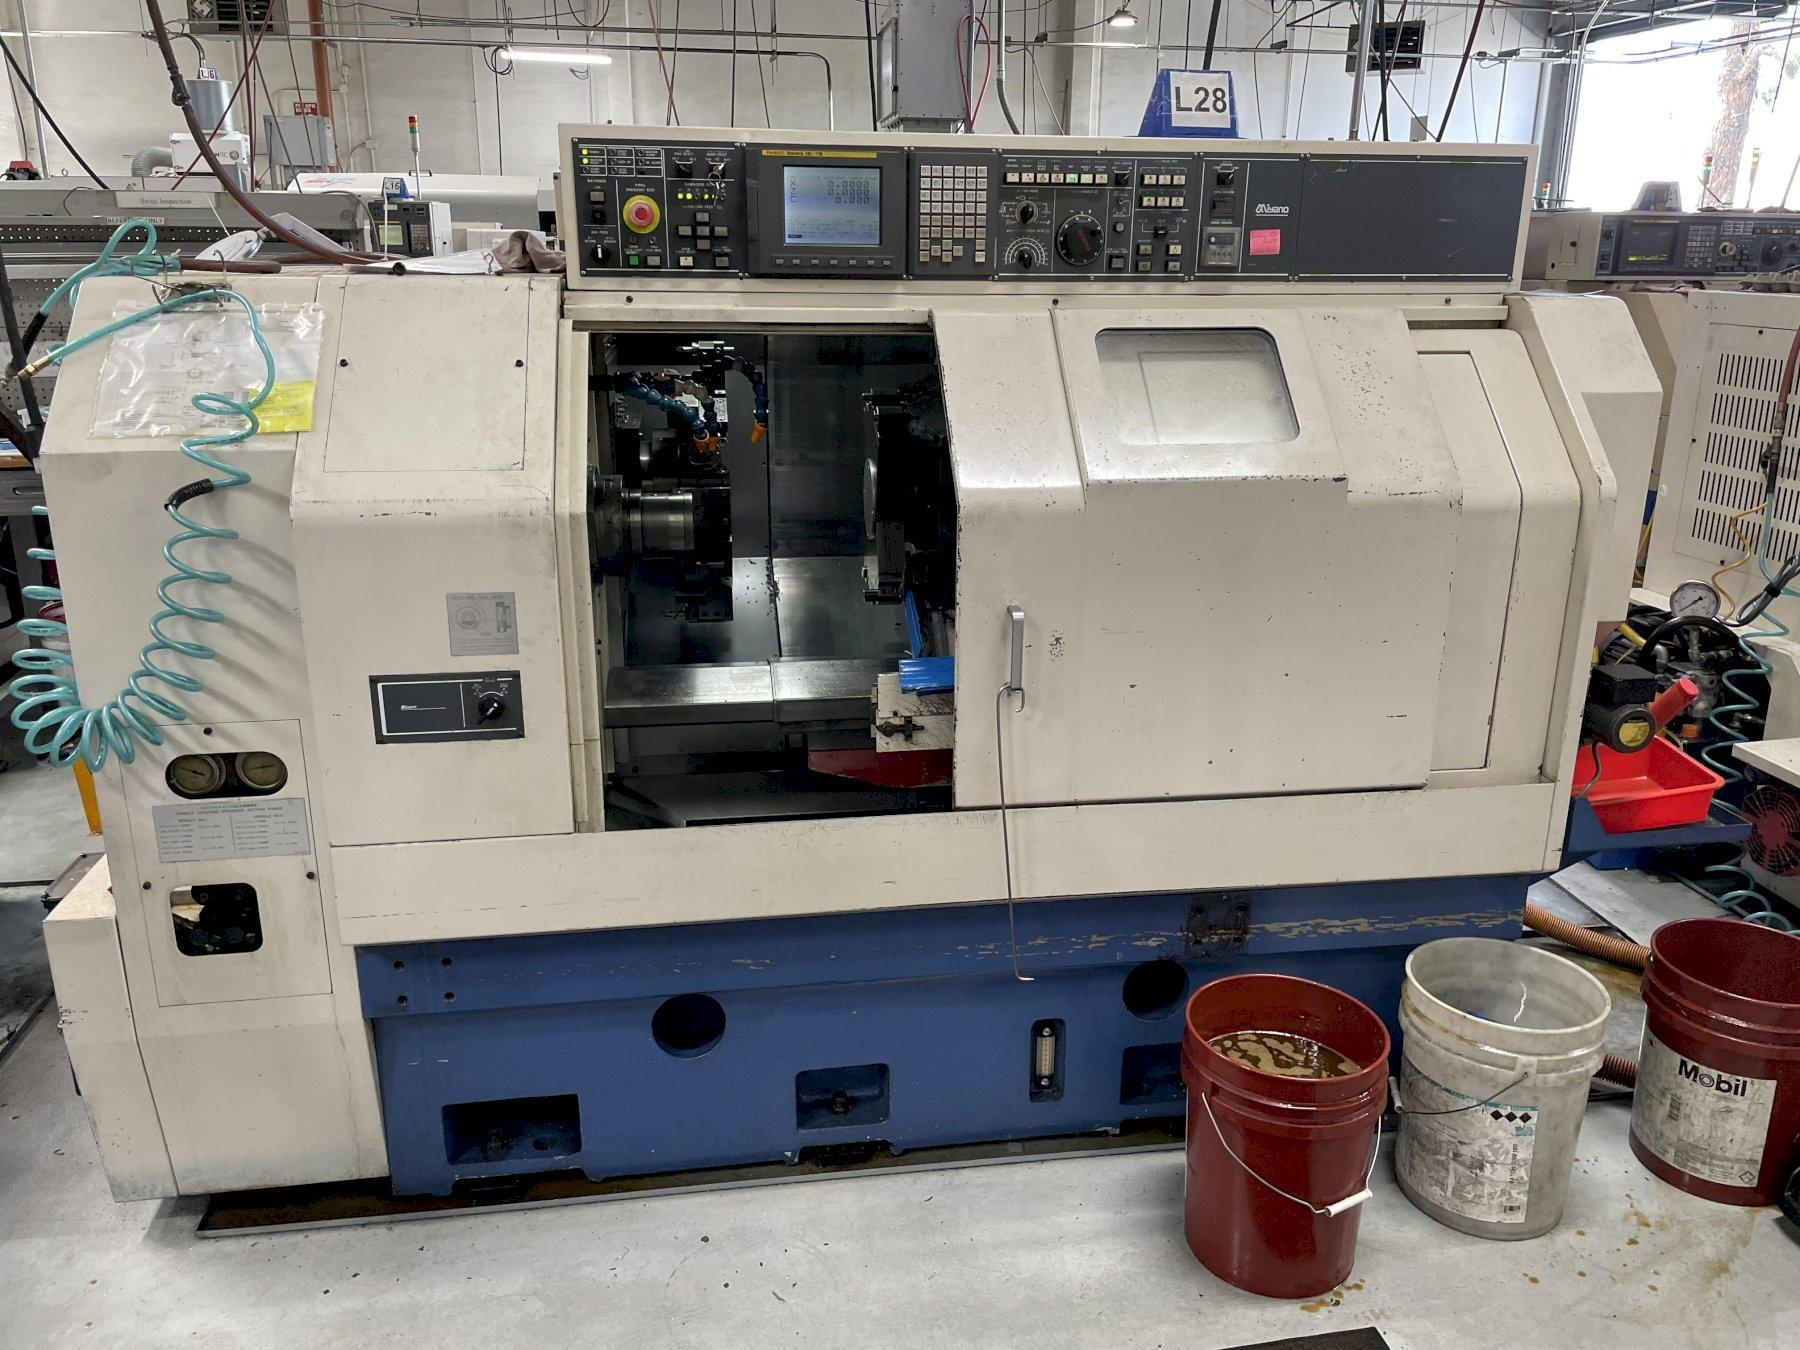 Miyano BNJ-42S Multi-Axis CNC Lathe 2007 with: Fanuc 18i-TB CNC Control, Live Milling, and Parts Catcher.